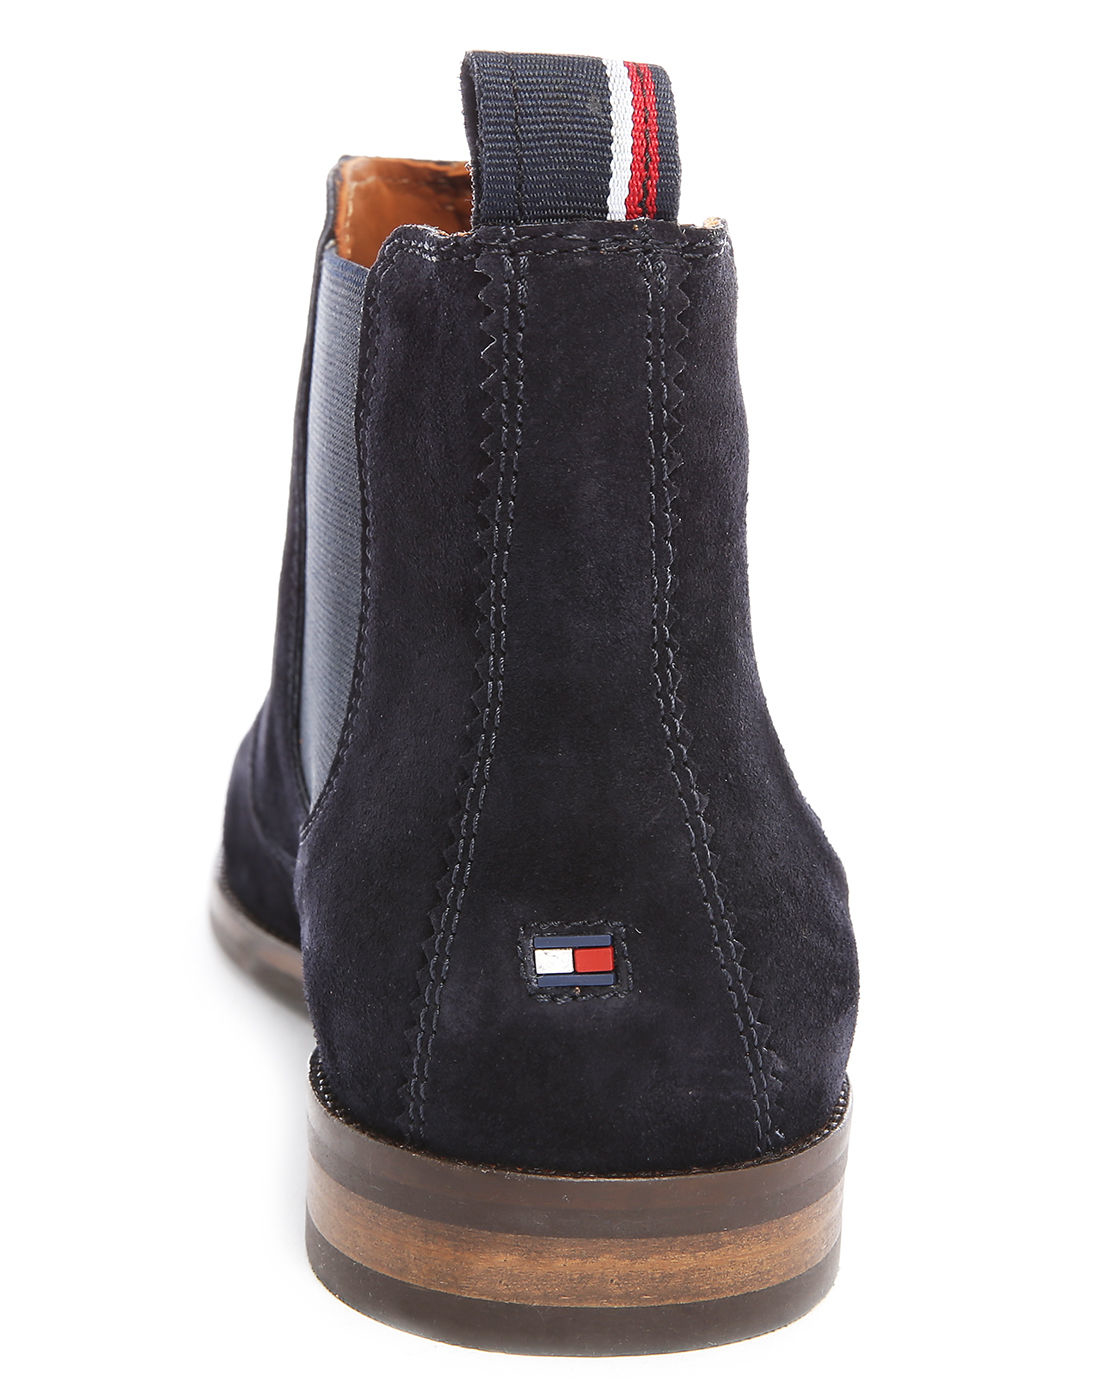 11c99a2fb All Black Suede Timberland Boots - Ivoiregion